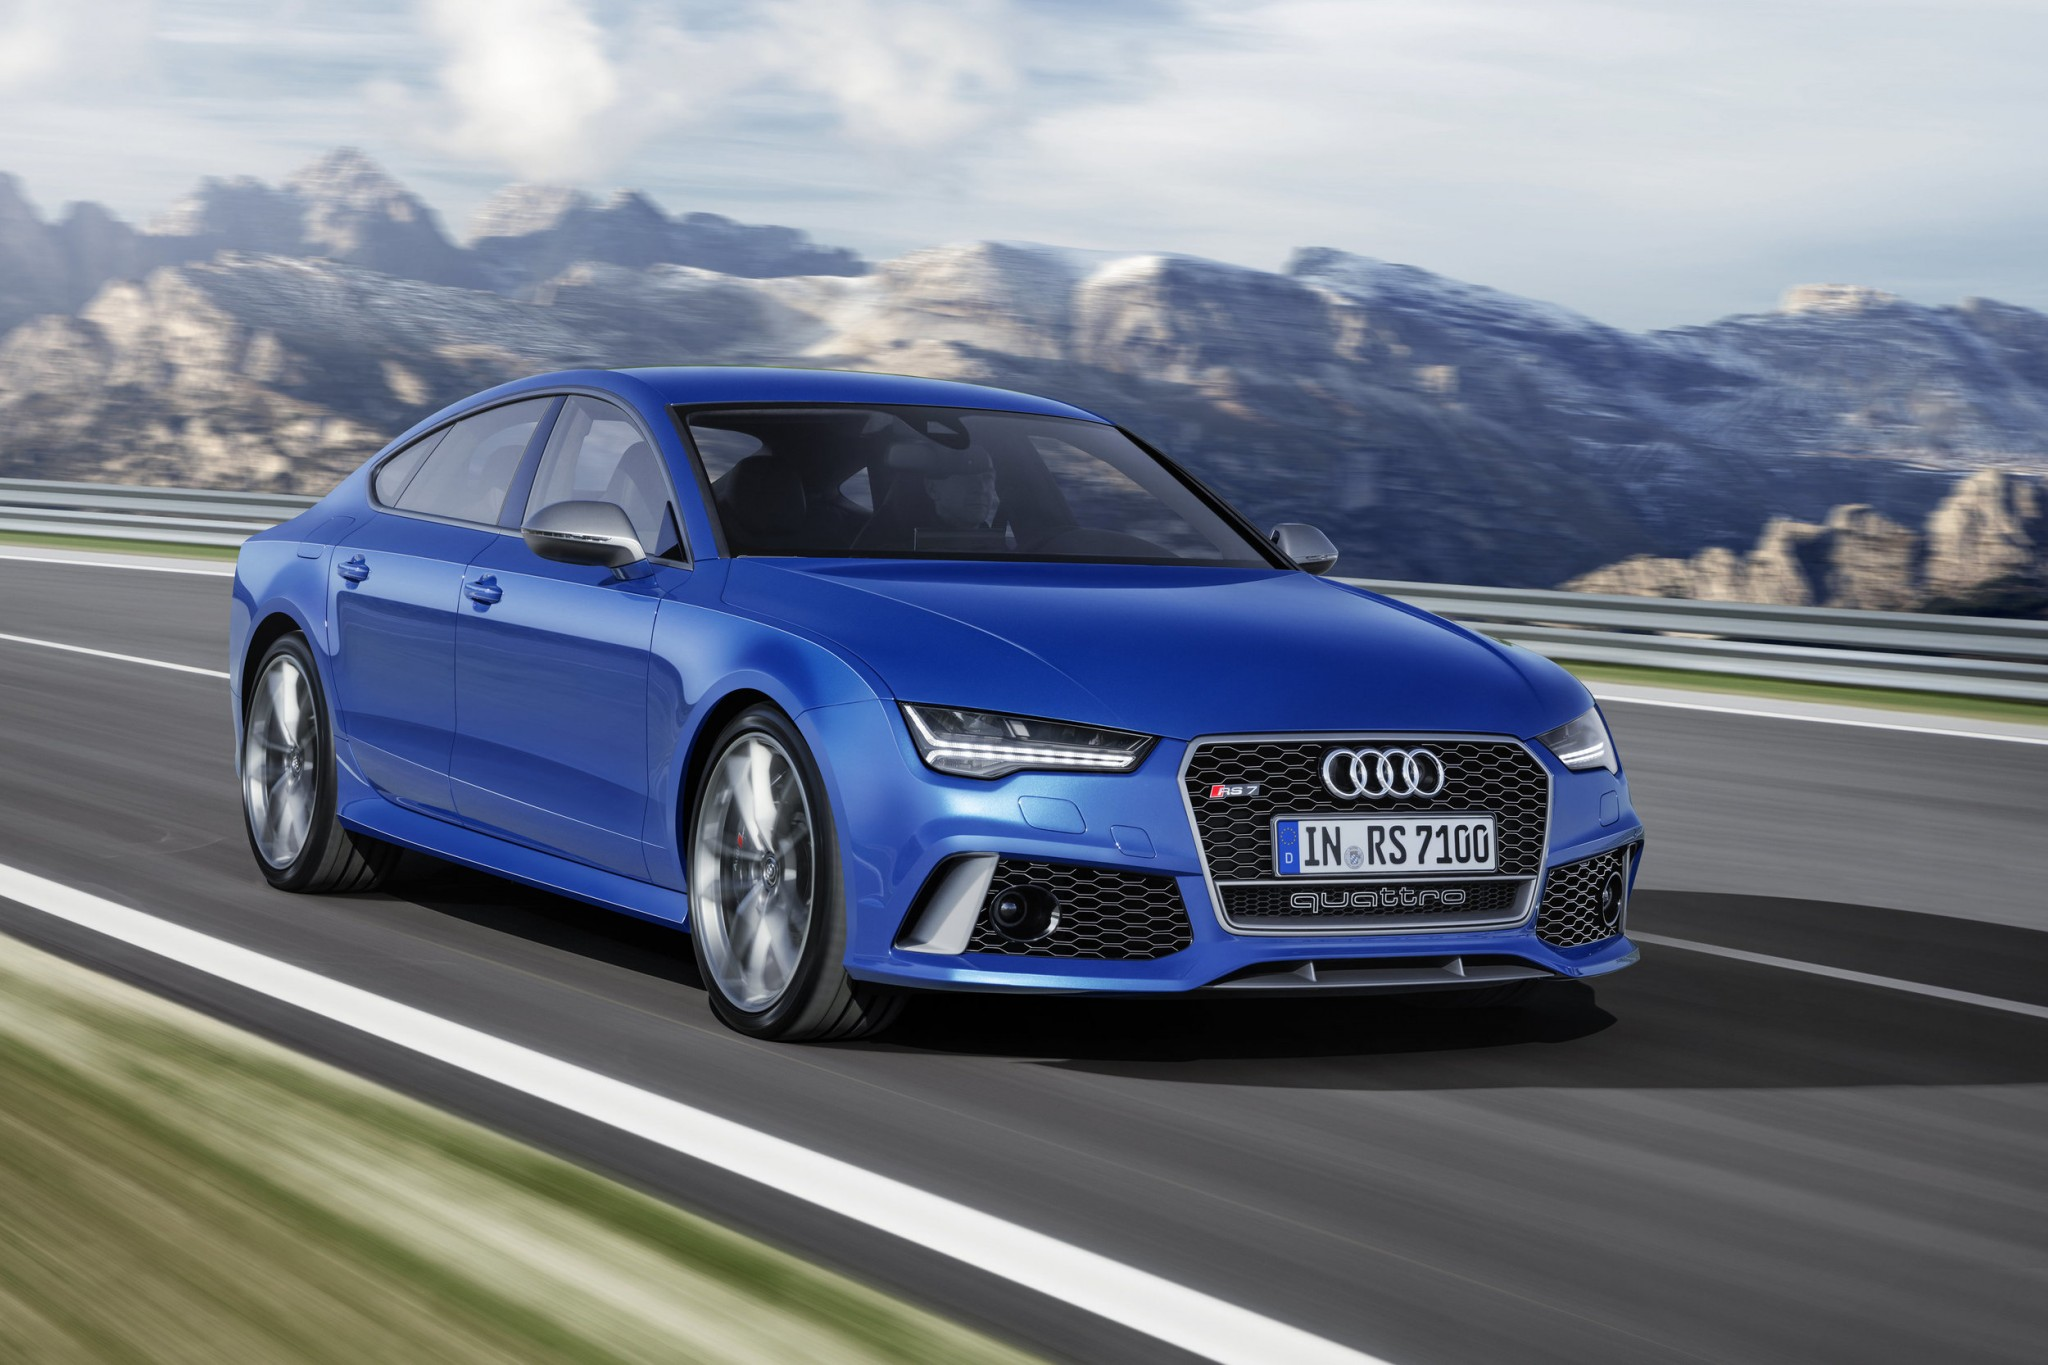 2015 Audi RS7 Performance